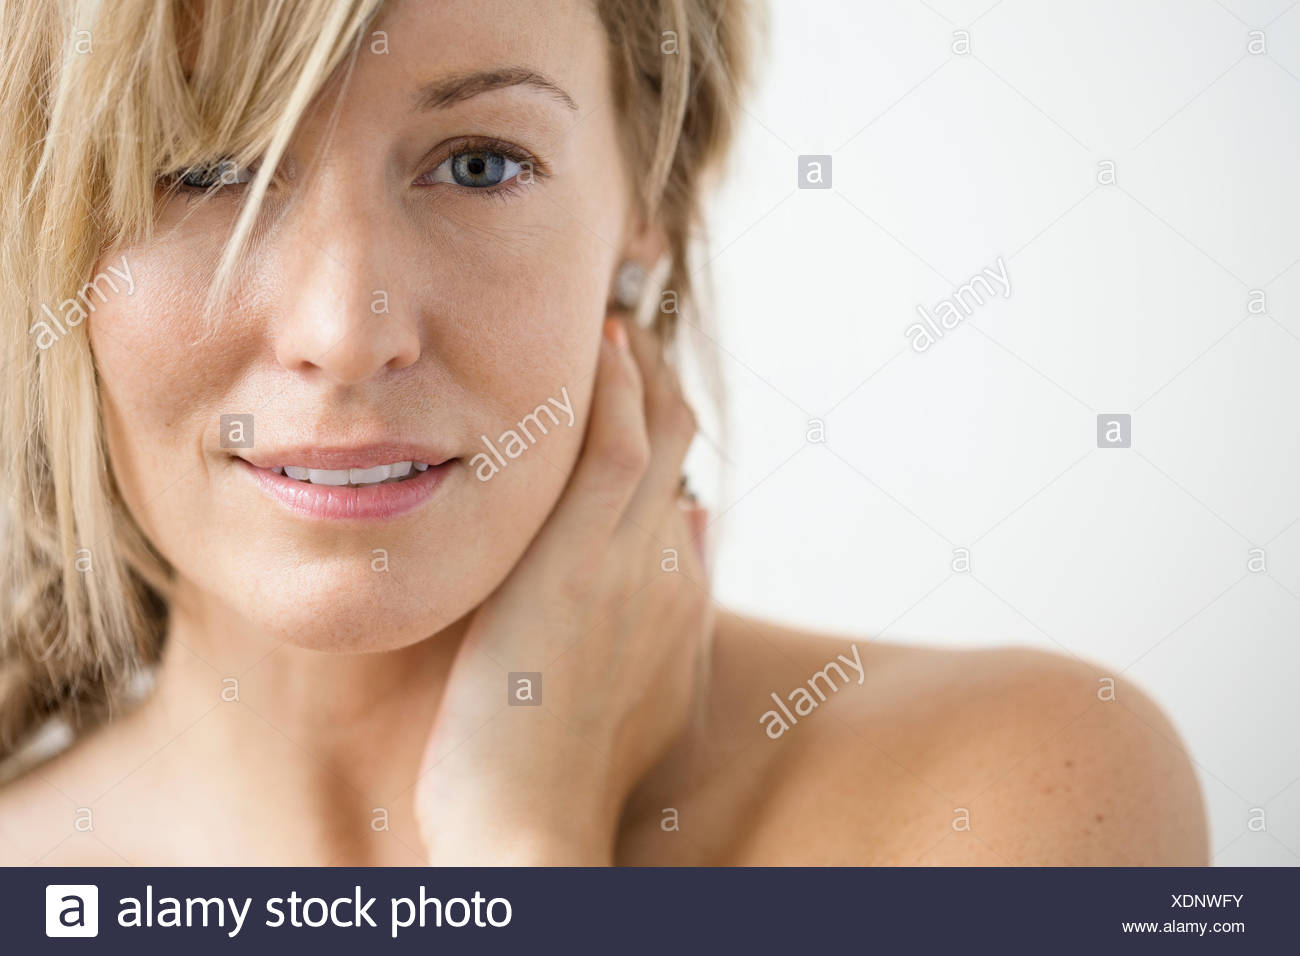 Close up of blonde woman with bare chest - Stock Image